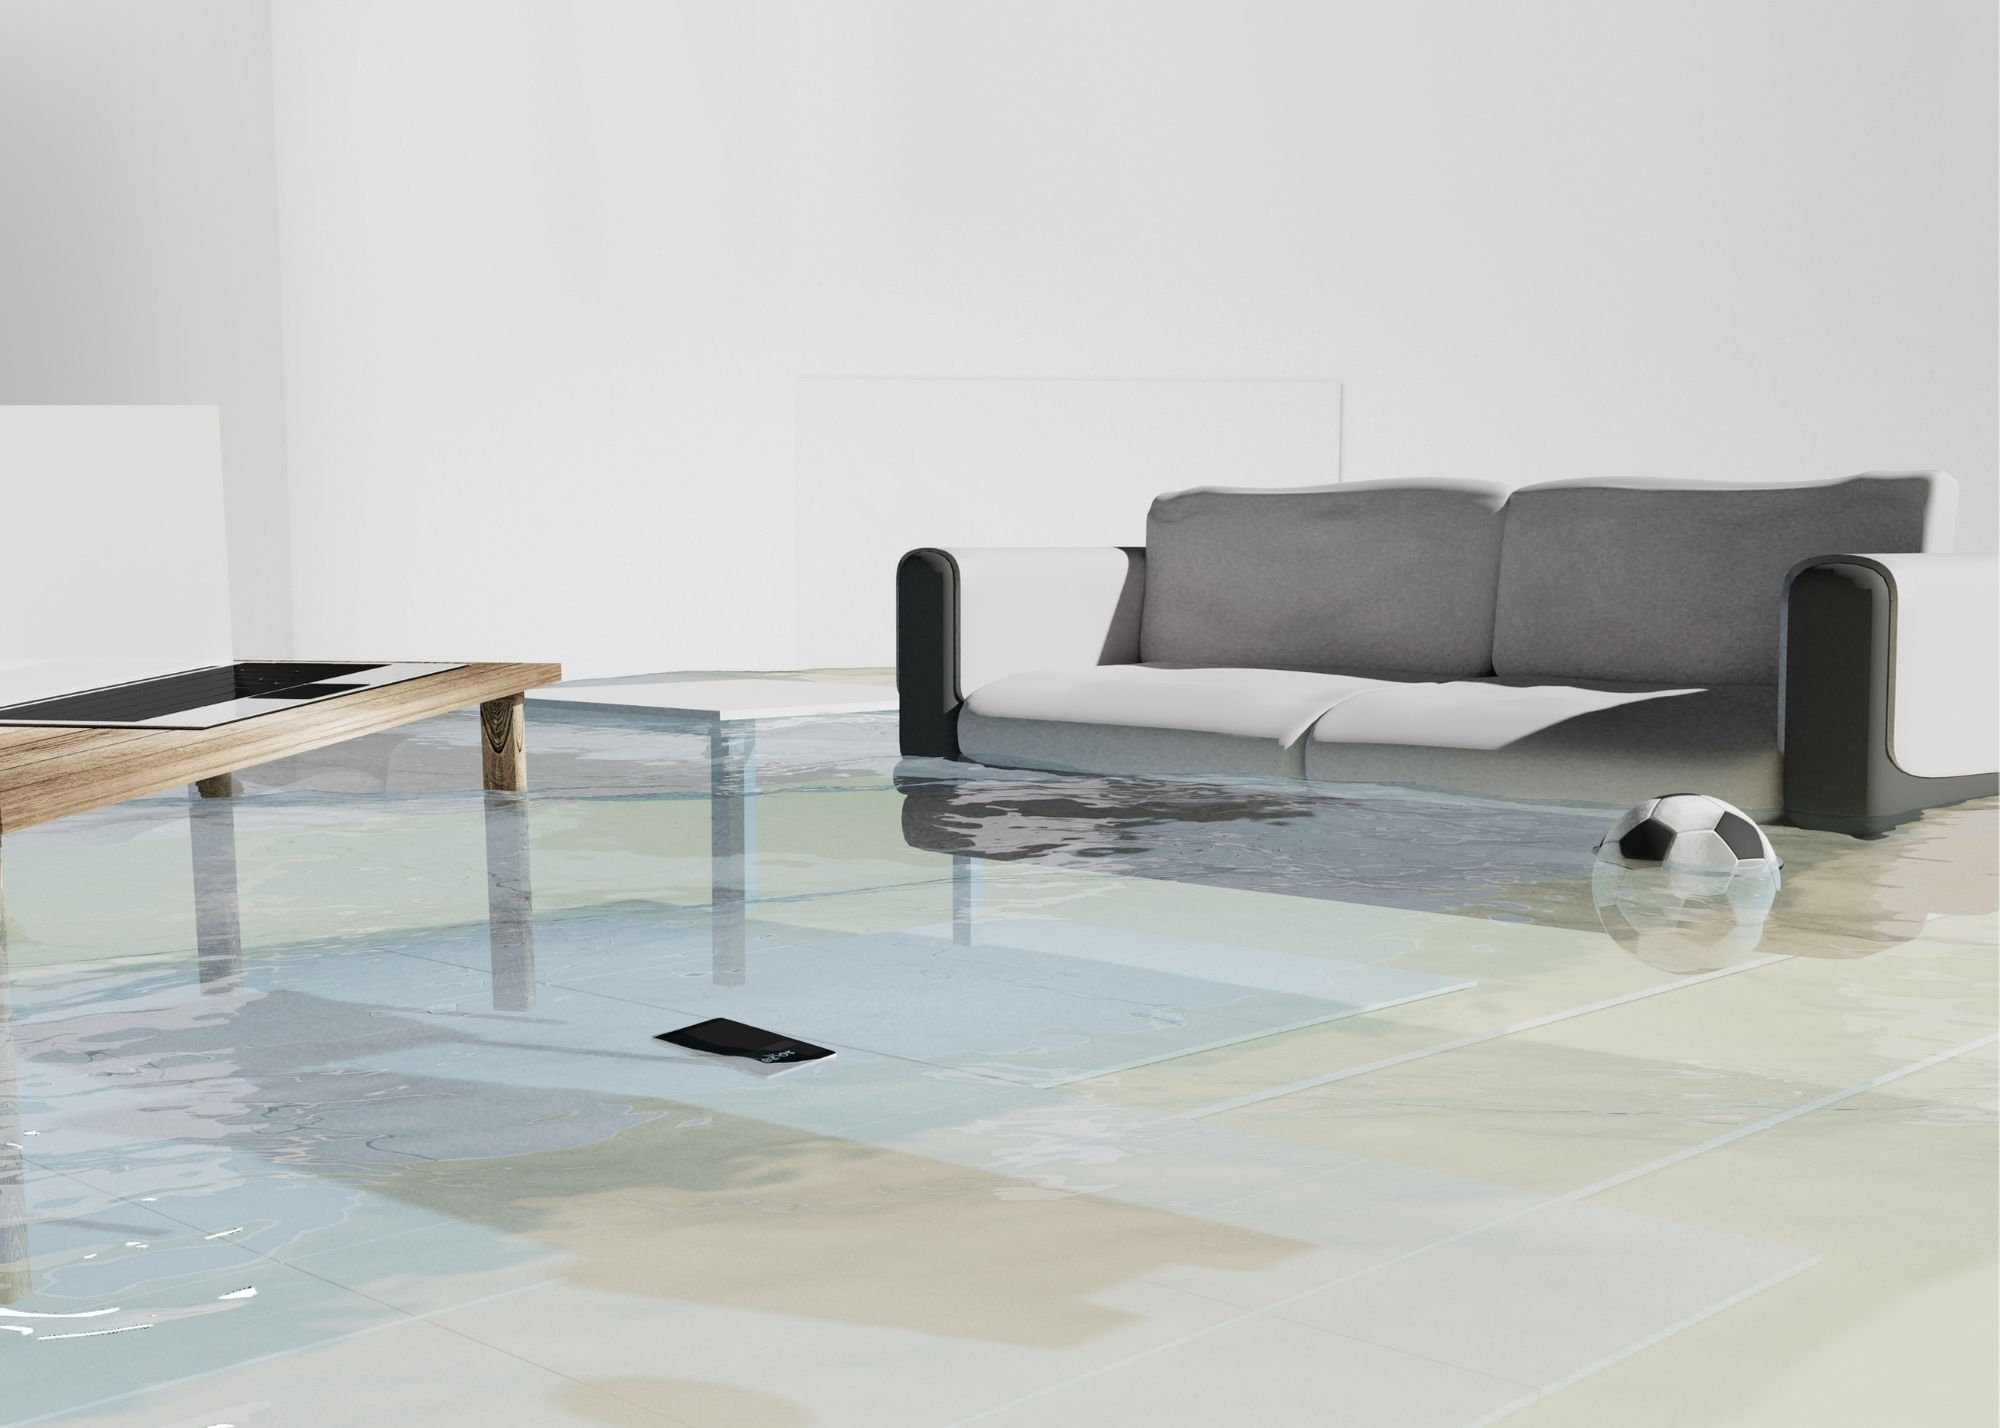 Water Damage Experts of Culver City California